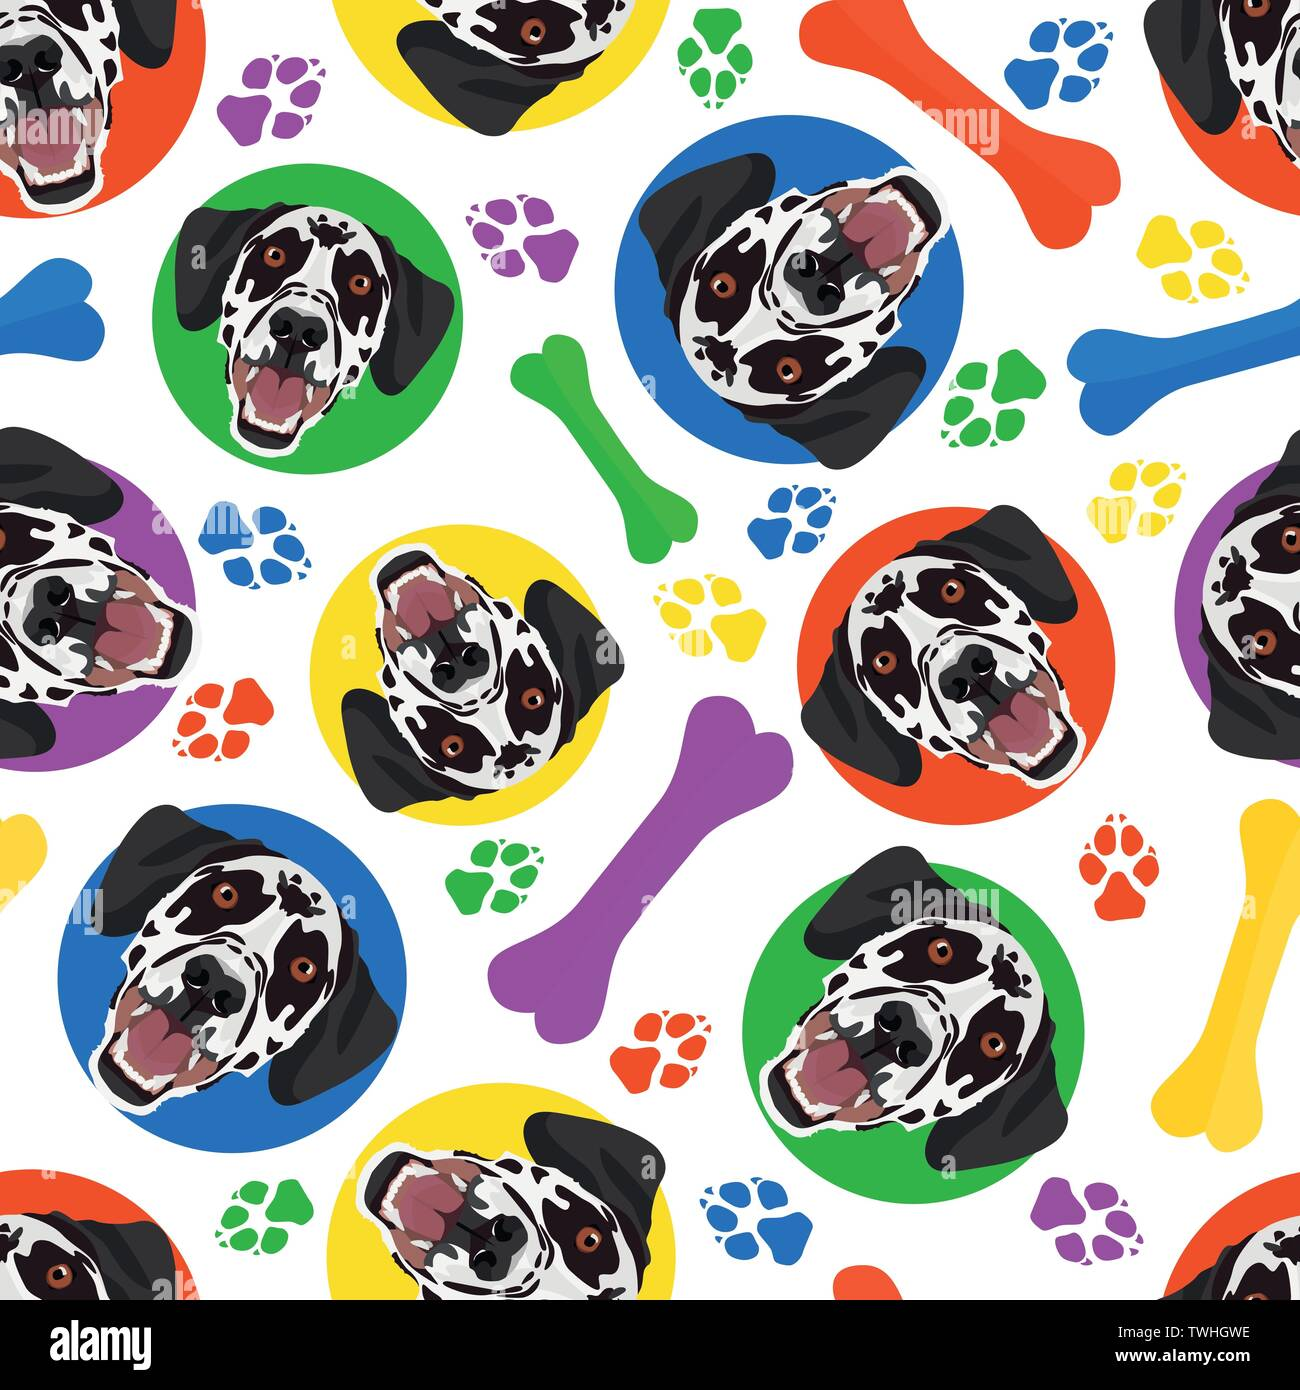 Colorful and playful Dalmatian - Seamless pattern with playful illustration of a dog. The smiling dog is a great gift for dog lovers and dog owners. Stock Vector